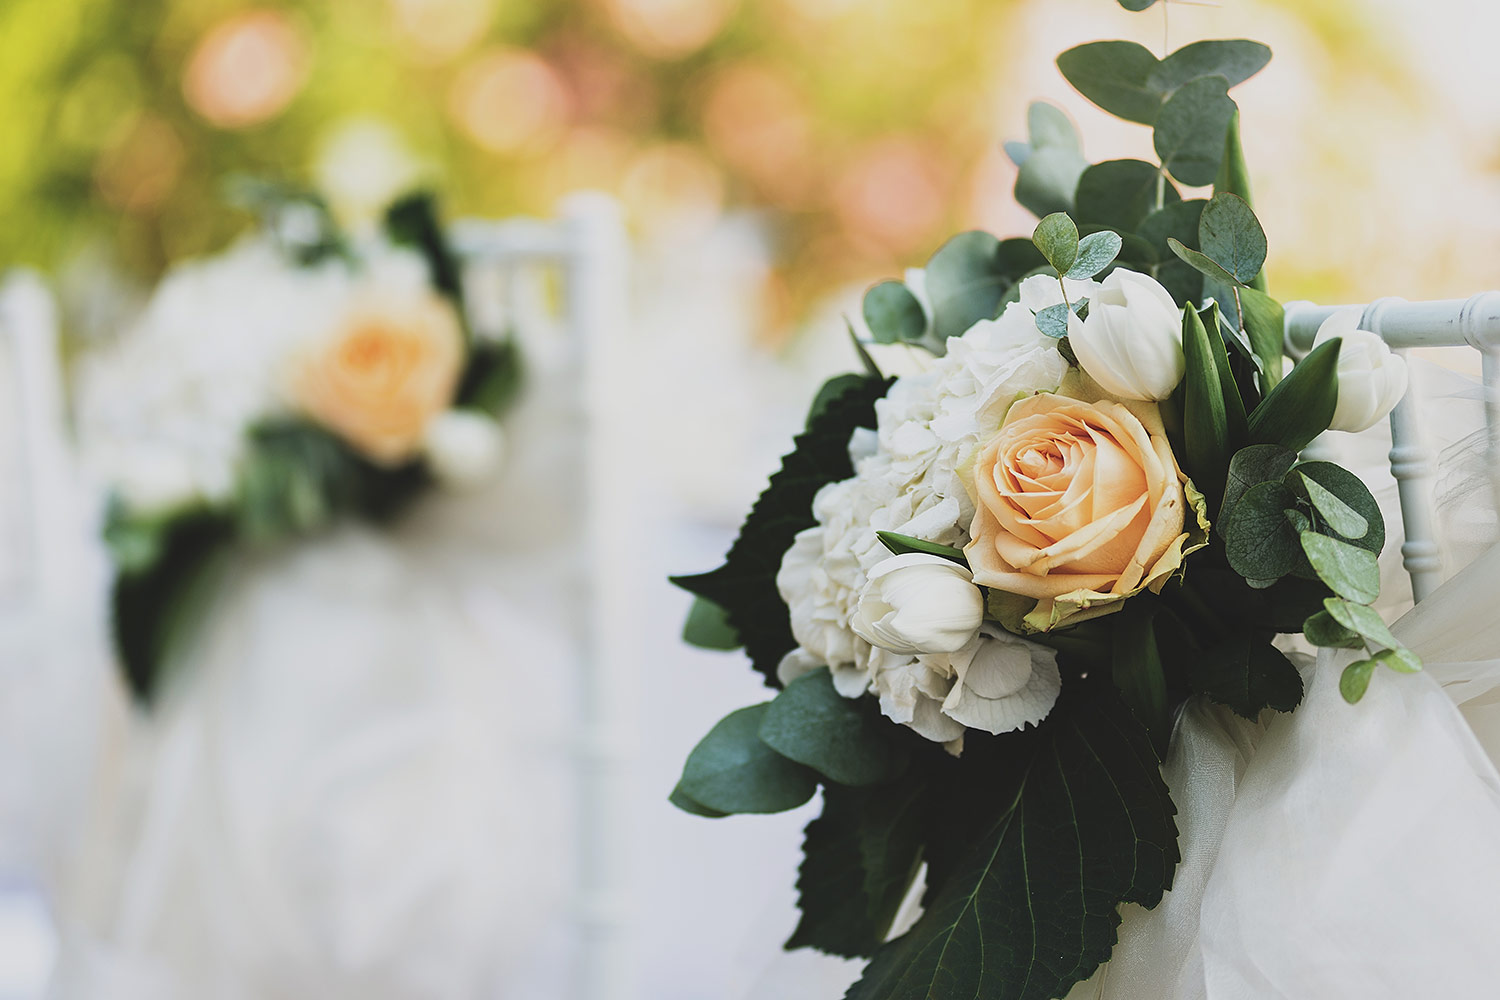 Romantic Themed Wedding Decor